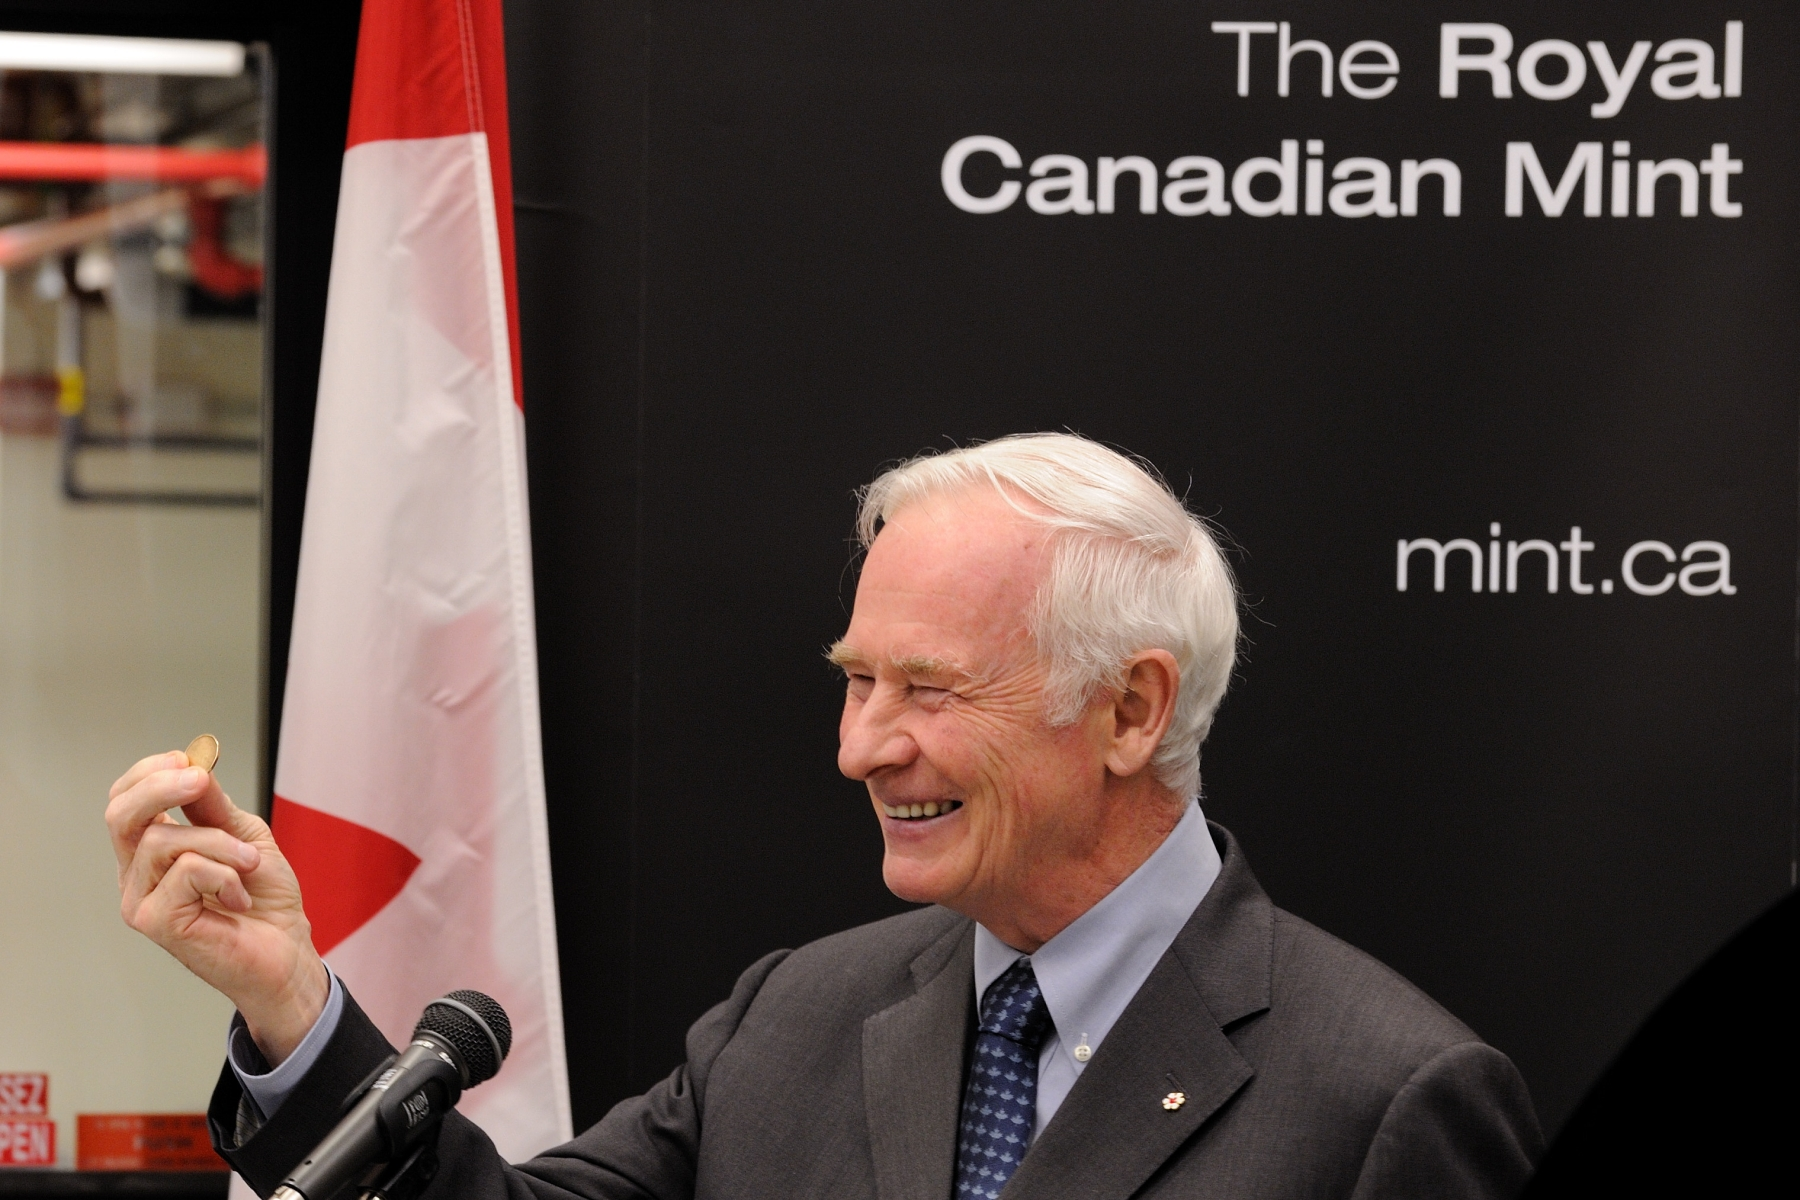 "His Excellency the Right Honourable David Johnston, Governor General of Canada, attended the unveiling of two Royal Wedding coins at the Royal Canadian Mint. For this special occasion, the Governor General delivered a speech: ""It is a pleasure to be with you here today for the unveiling of two commemorative coins in honour of the upcoming Royal Wedding of His Royal Highness Prince William and Miss Catherine Middleton. It is also my pleasure to strike one on this occasion, as past governors general have done. This wedding is also an opportunity to renew our commitment to the Crown and to celebrate our rich history."""